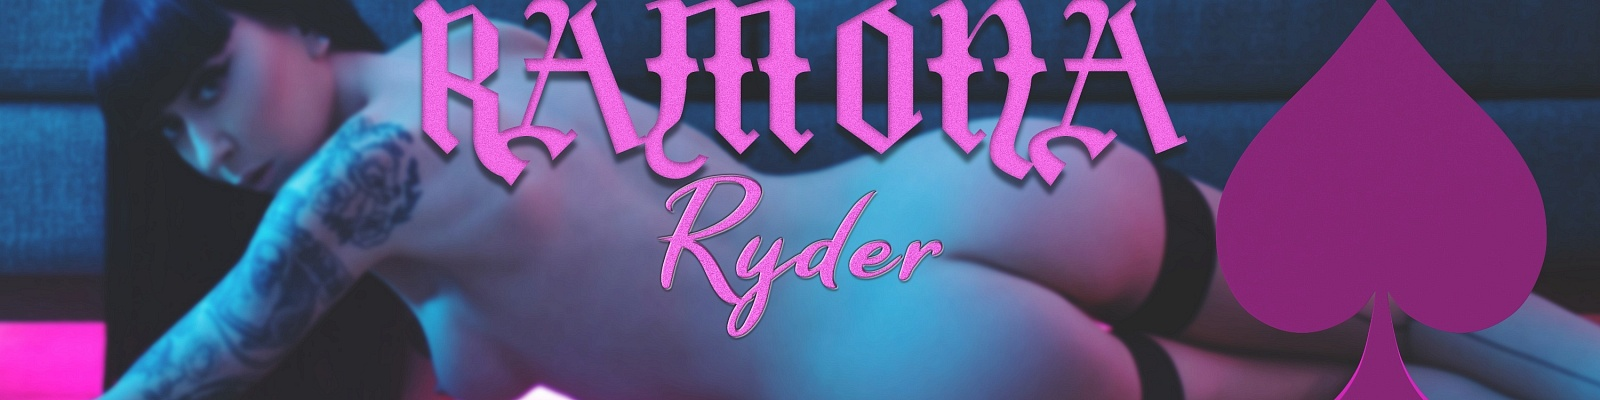 Mistress Ramona Ryder NYC's Cover Photo